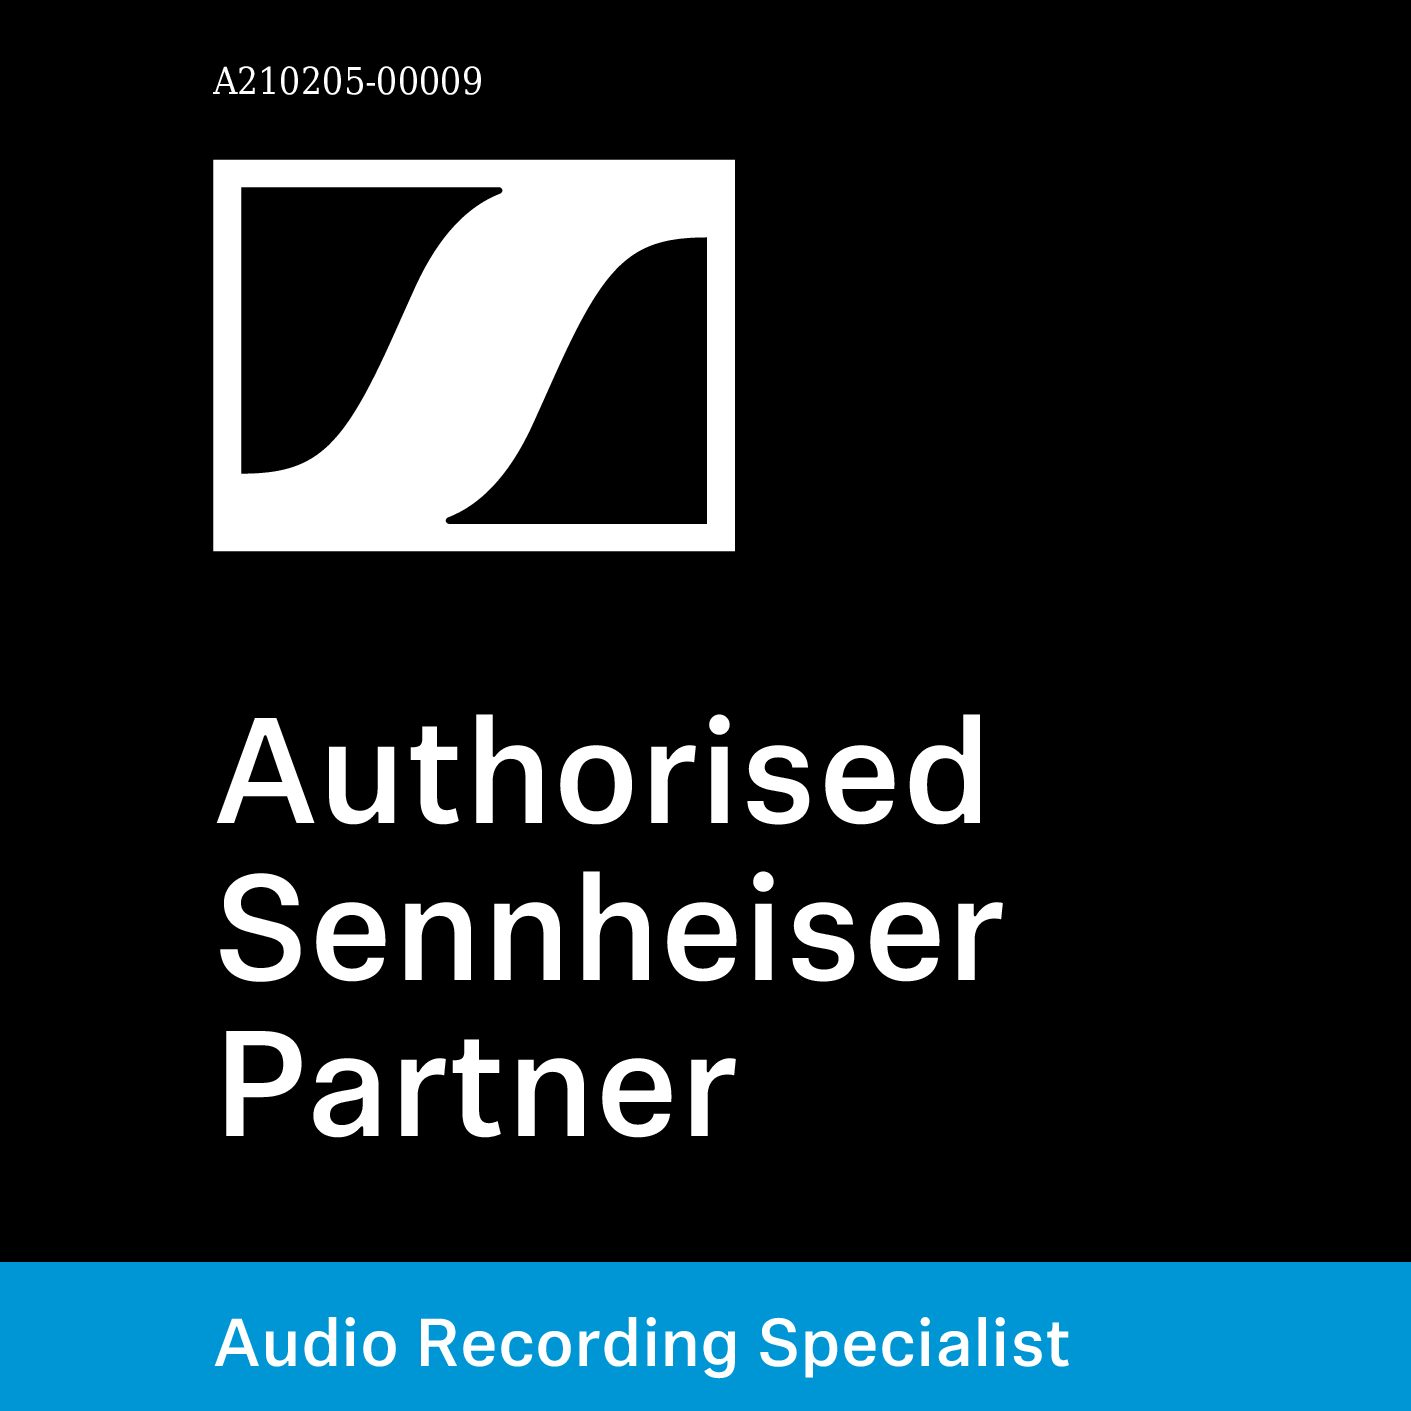 Sennheiser Audio Recording Specialise